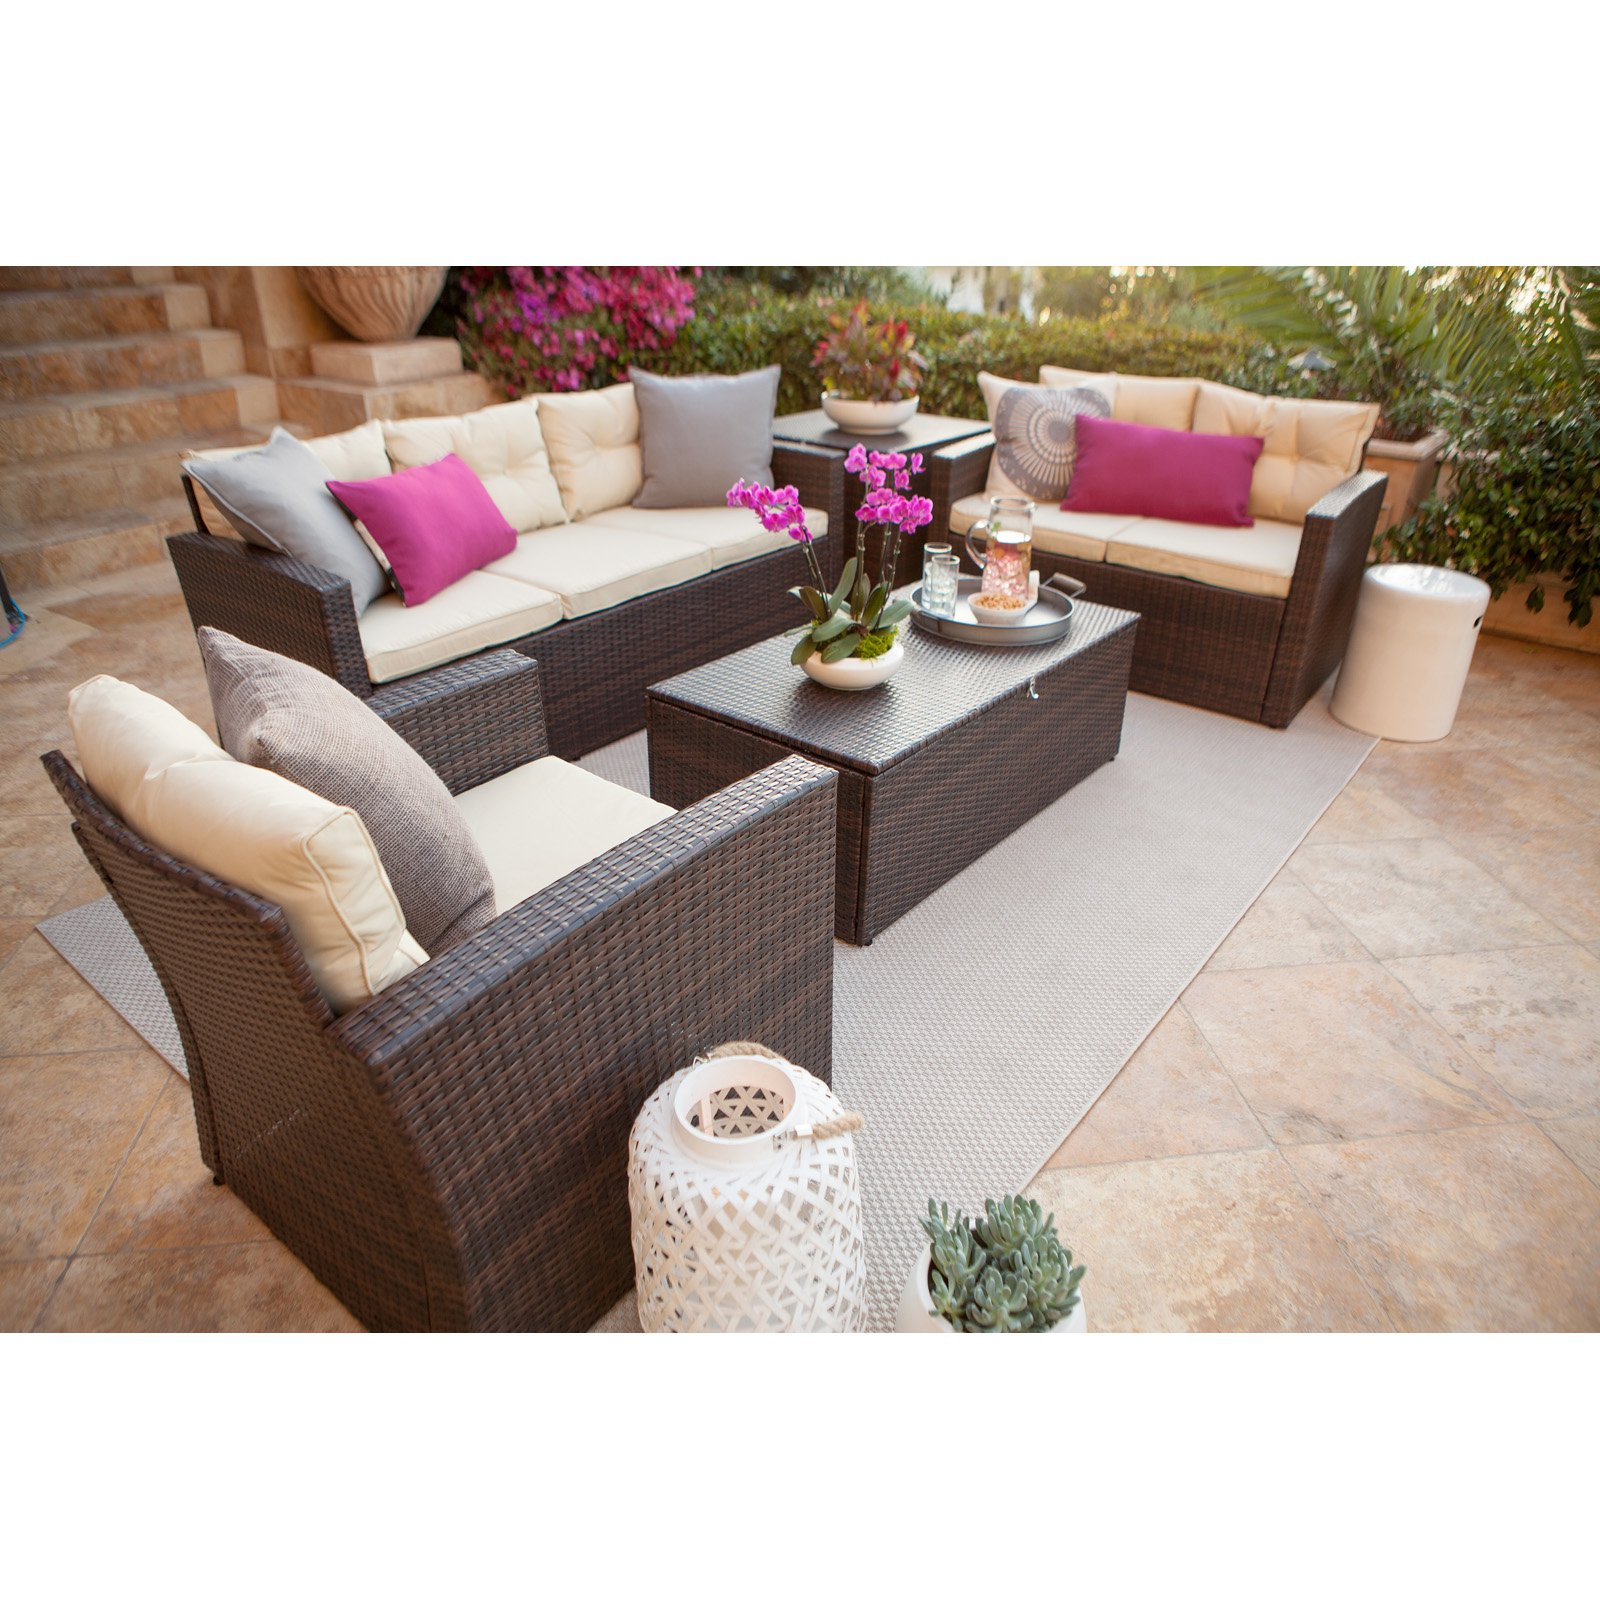 Thy-Hom Rio Wicker All-Weather 5 Piece Patio Conversation Set with Storage by The-Hom